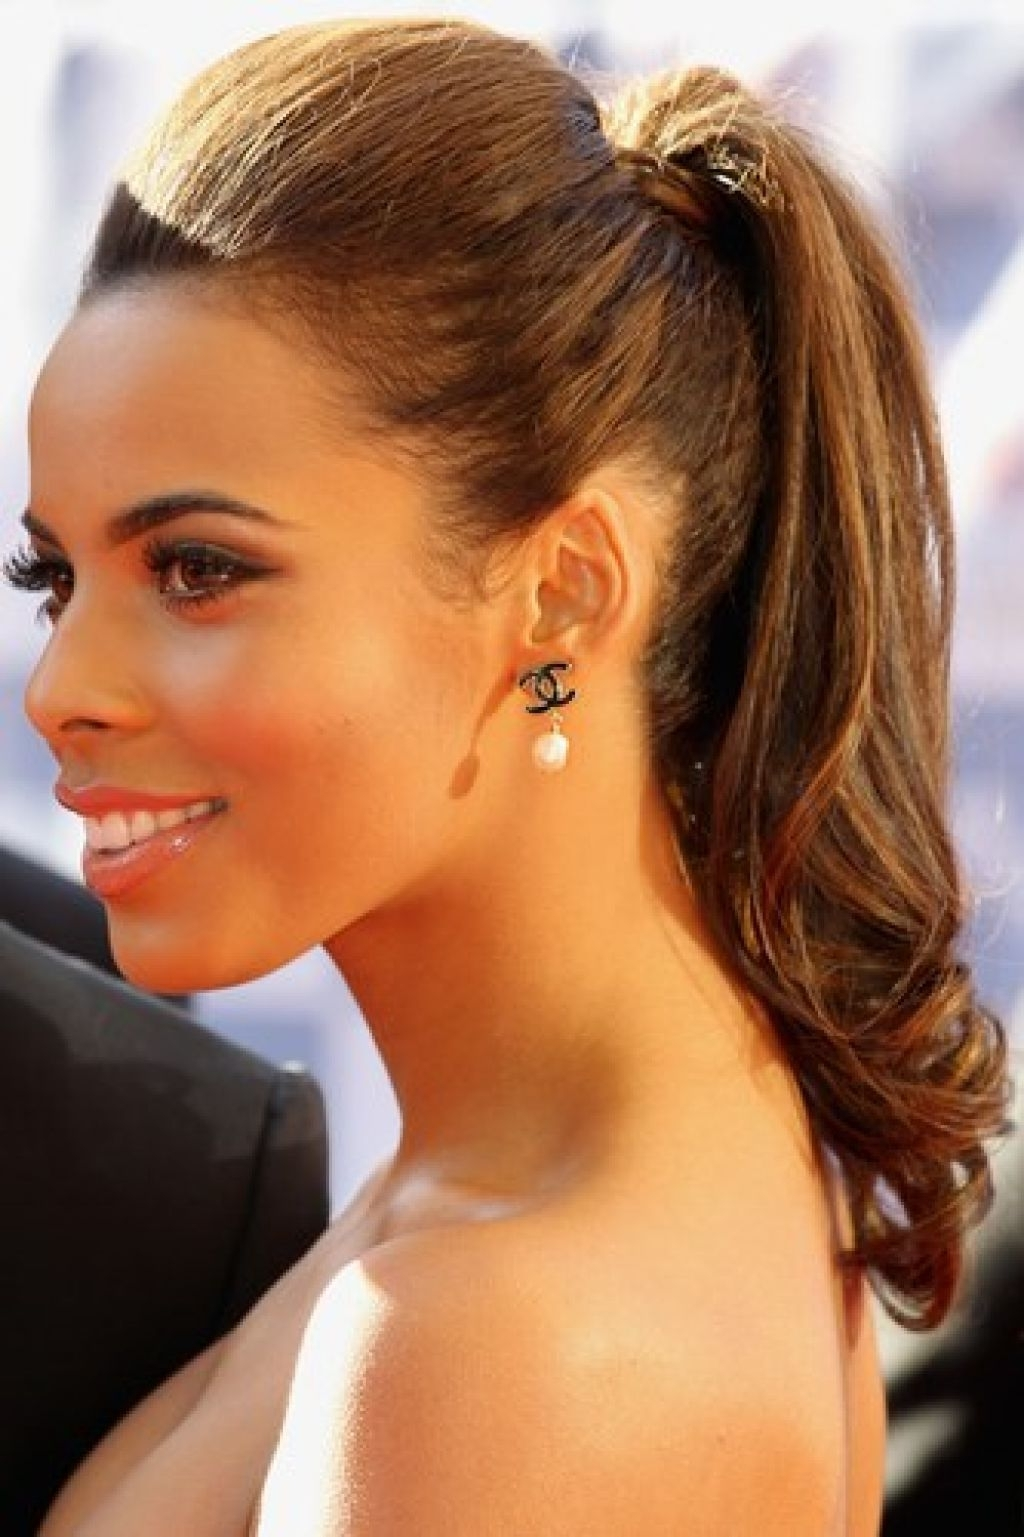 Wedding Hairstyles Ideas: Pulled Back Low Updo Wedding Guest Intended For Famous Wedding Hairstyles For Long Hair Pulled To The Side (View 15 of 15)